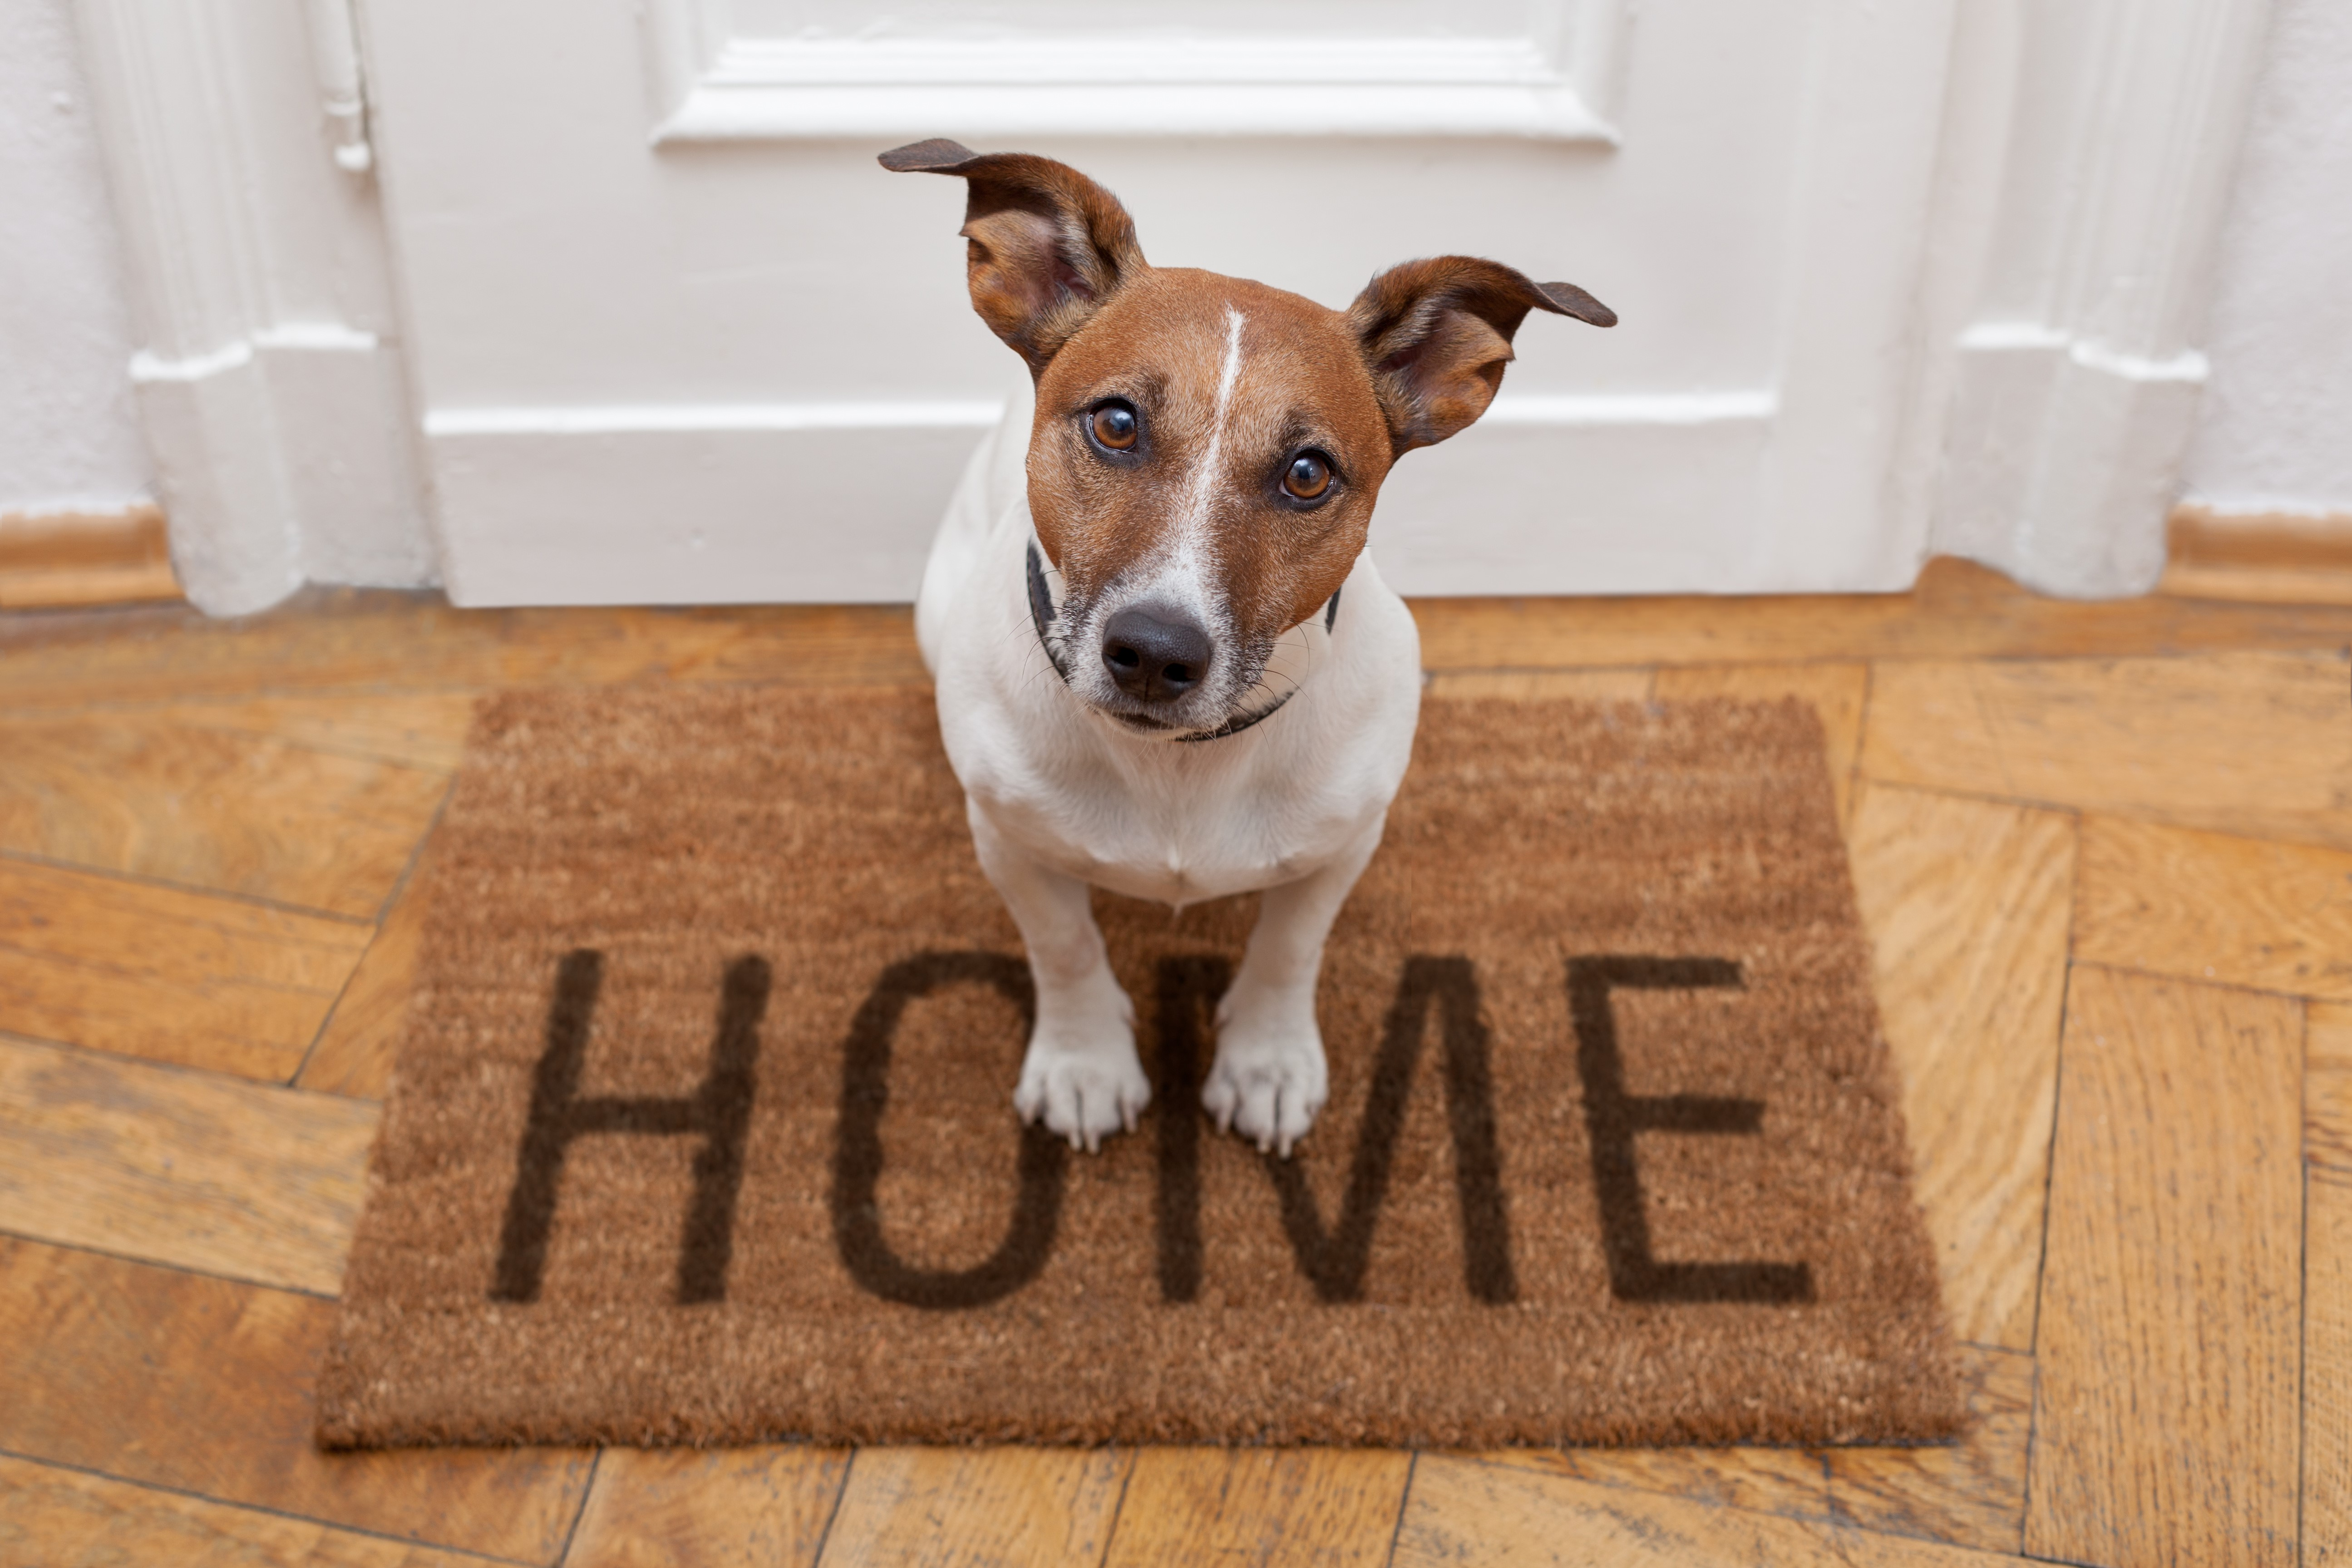 Animal welfare advice for rehoming your pets